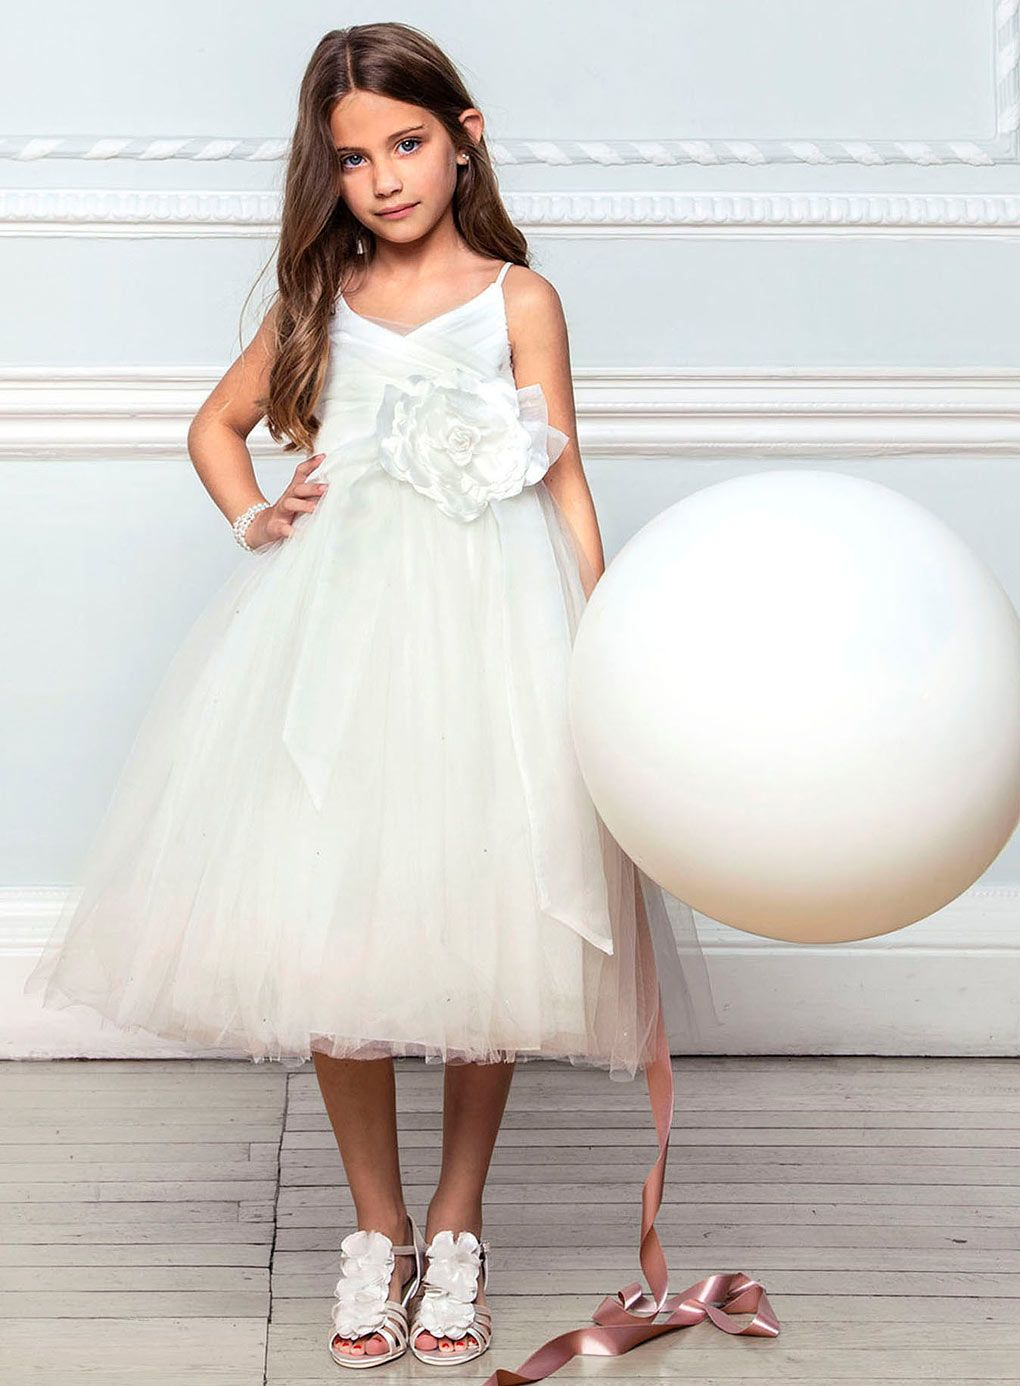 Lydia ivory strappy bridesmaid dress with full skirt child lydia ivory strappy bridesmaid dress with full skirt child dresses young bridesmaids wedding ombrellifo Image collections